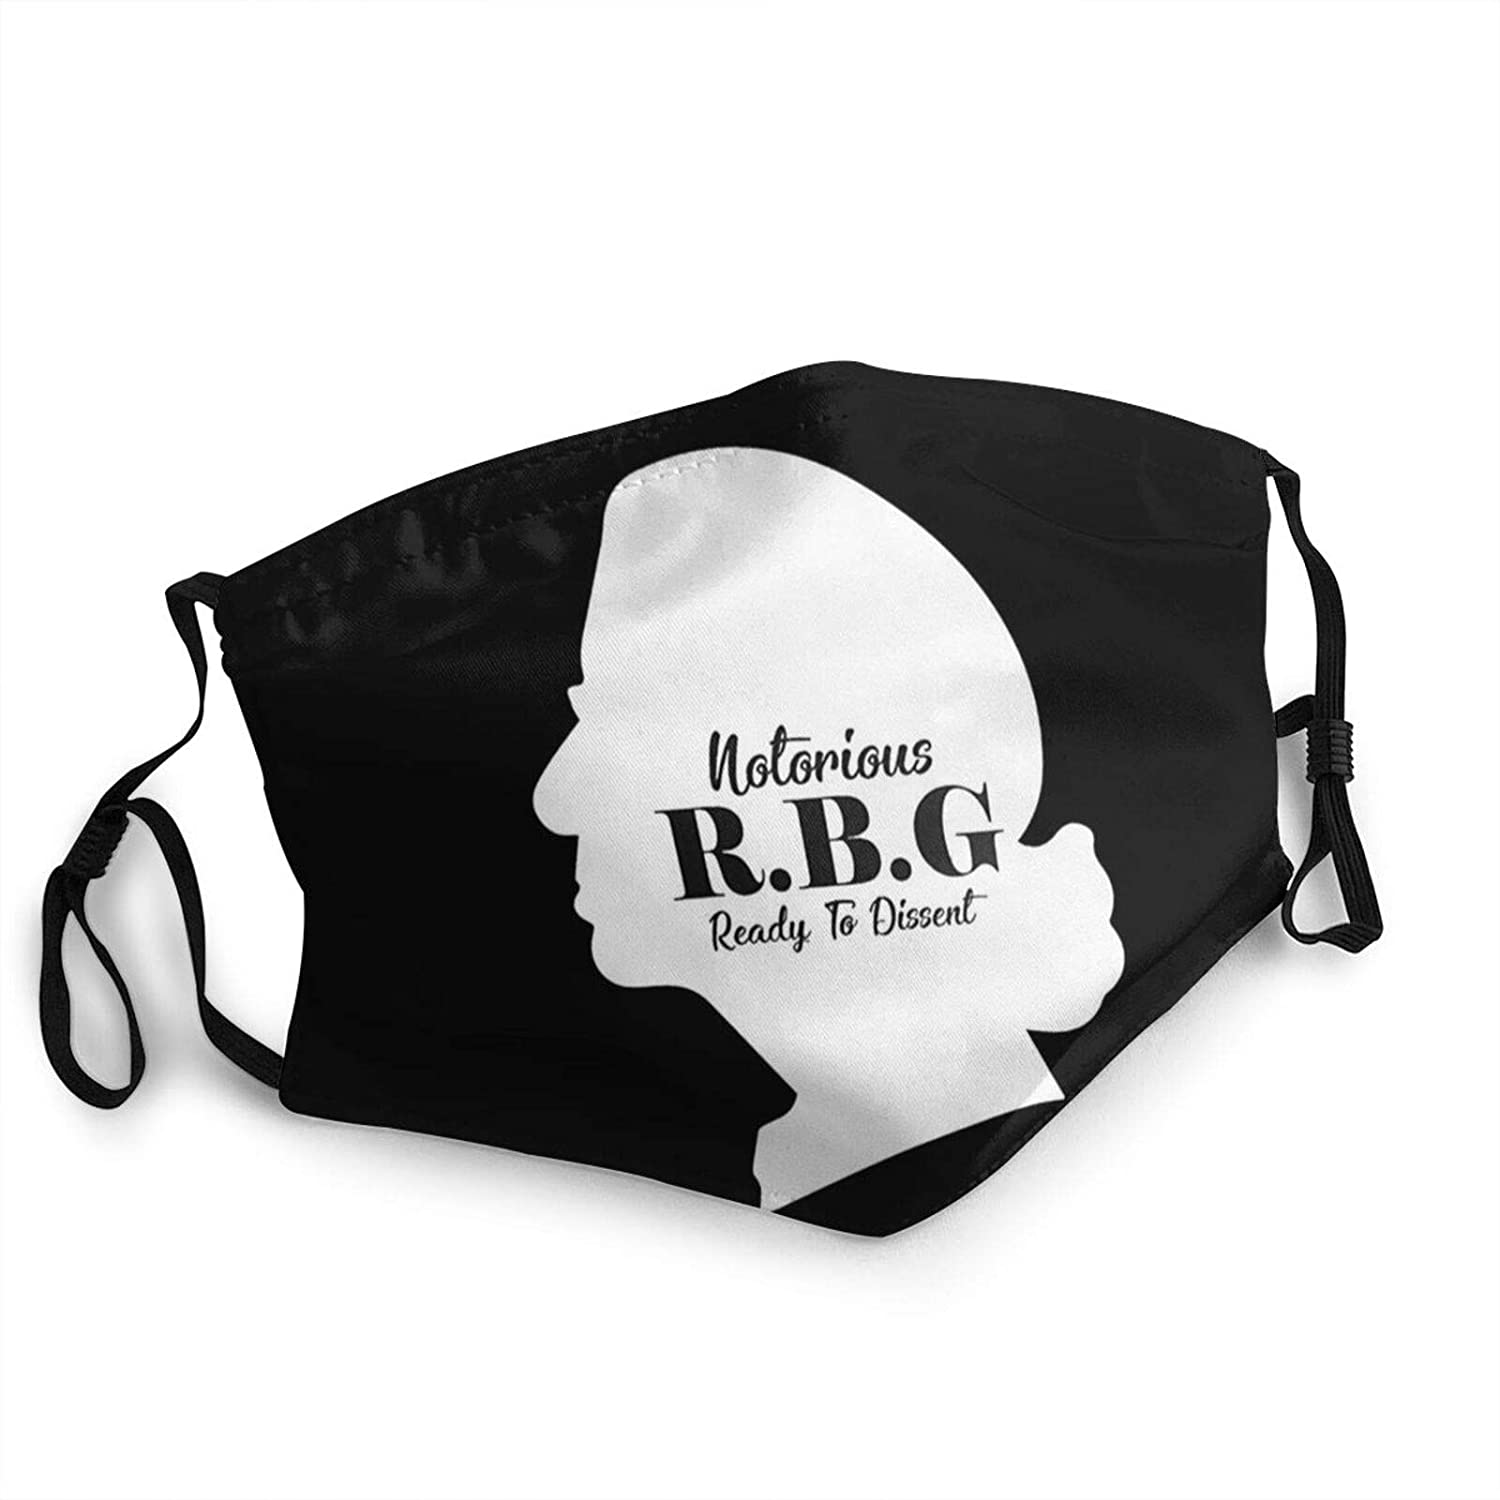 Outdoor RBG Face Cloth Bandana Fight For The Things You Care Protection Adjustable Earloop